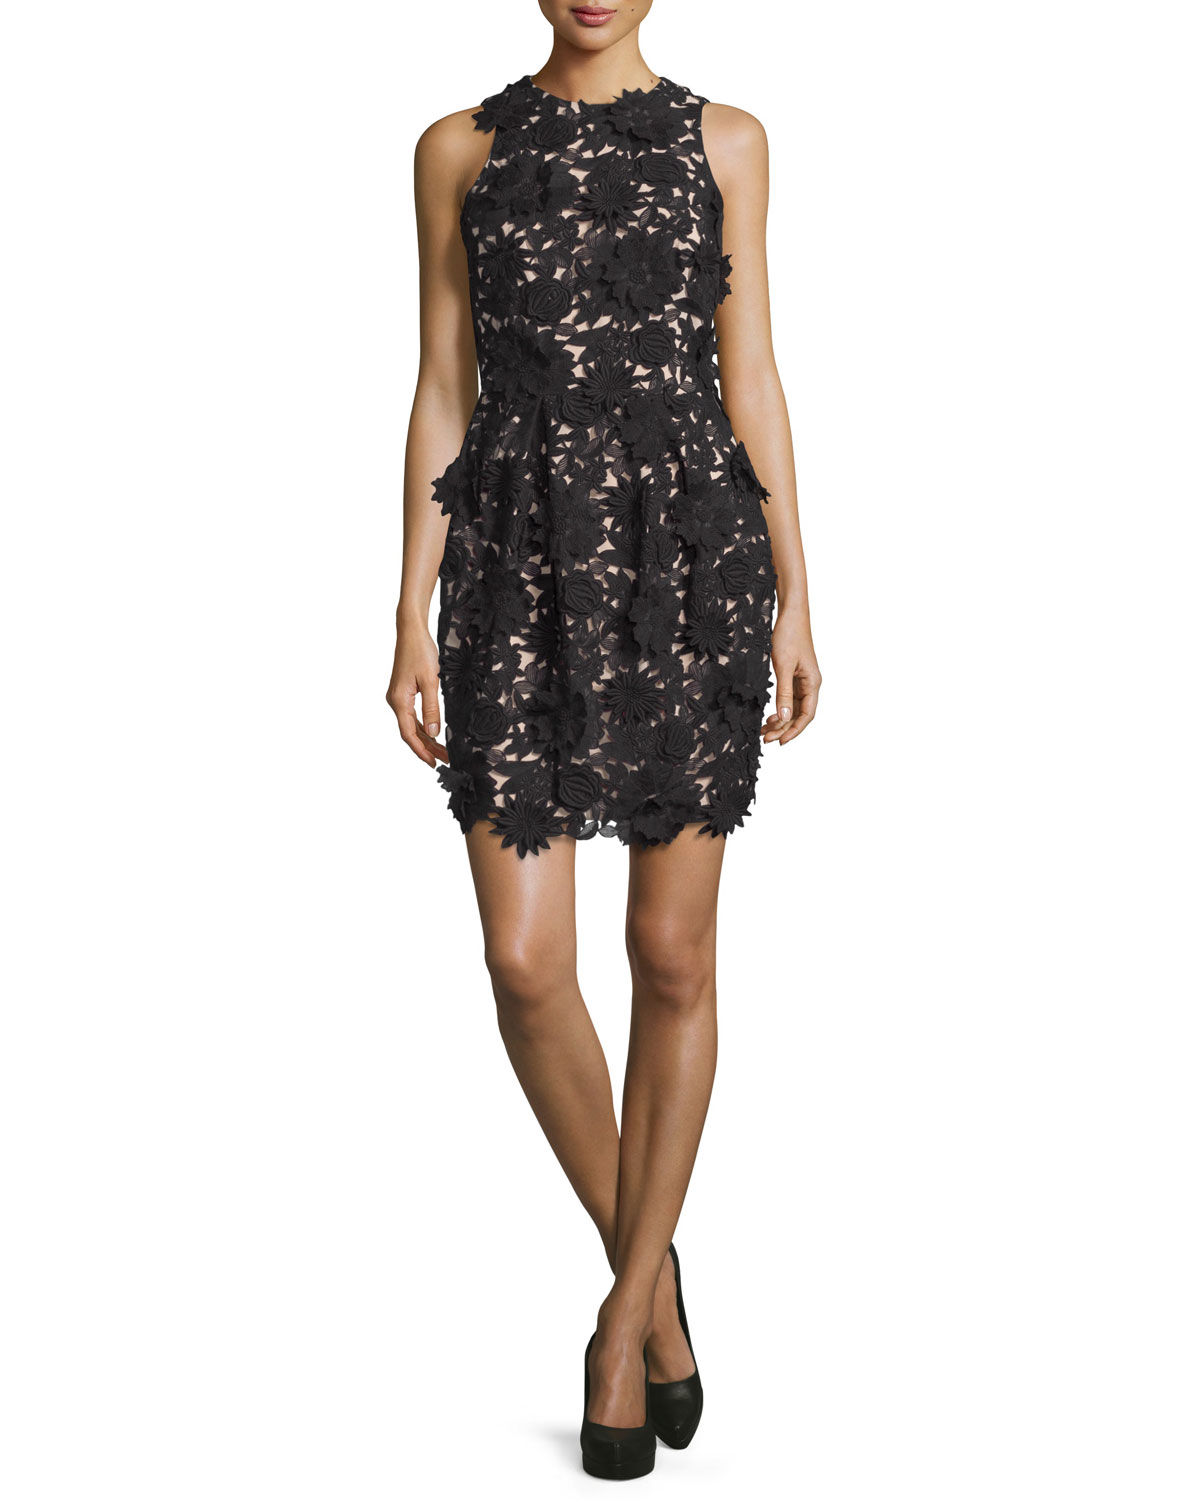 Floral-Embellished Cocktail Dress, Black/Nude